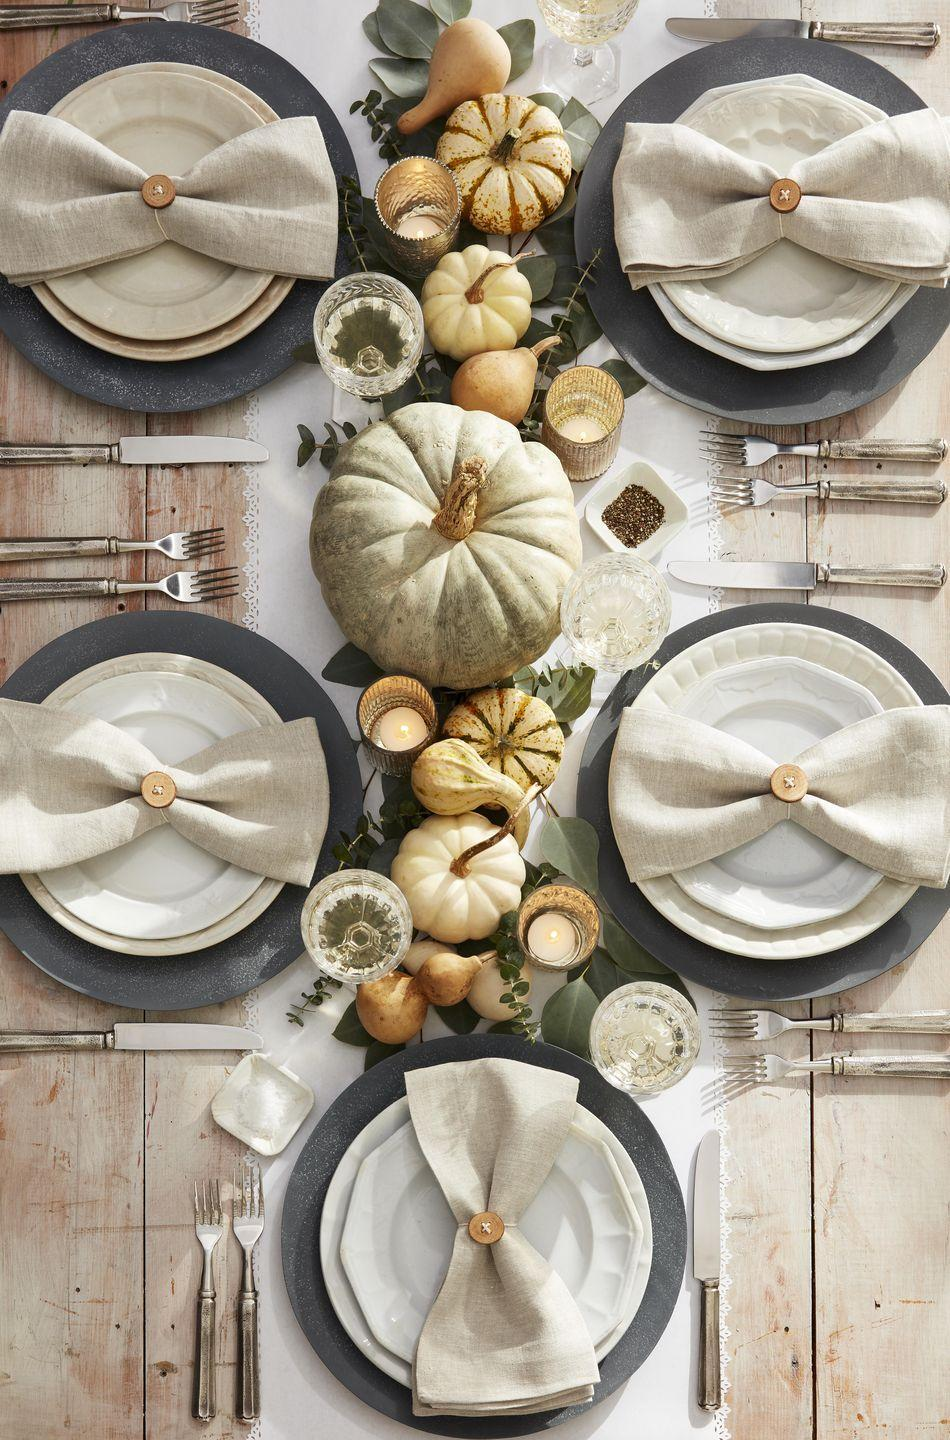 <p>Neutral tones, including whitewashed pumpkins and dried gourds, are layered on top of a smattering of green eucalyptus leaves to create this sophisticated, neutral-toned centerpiece. Bonus: Thread twine through wood buttons and use to tie up linen napkins. <br></p>